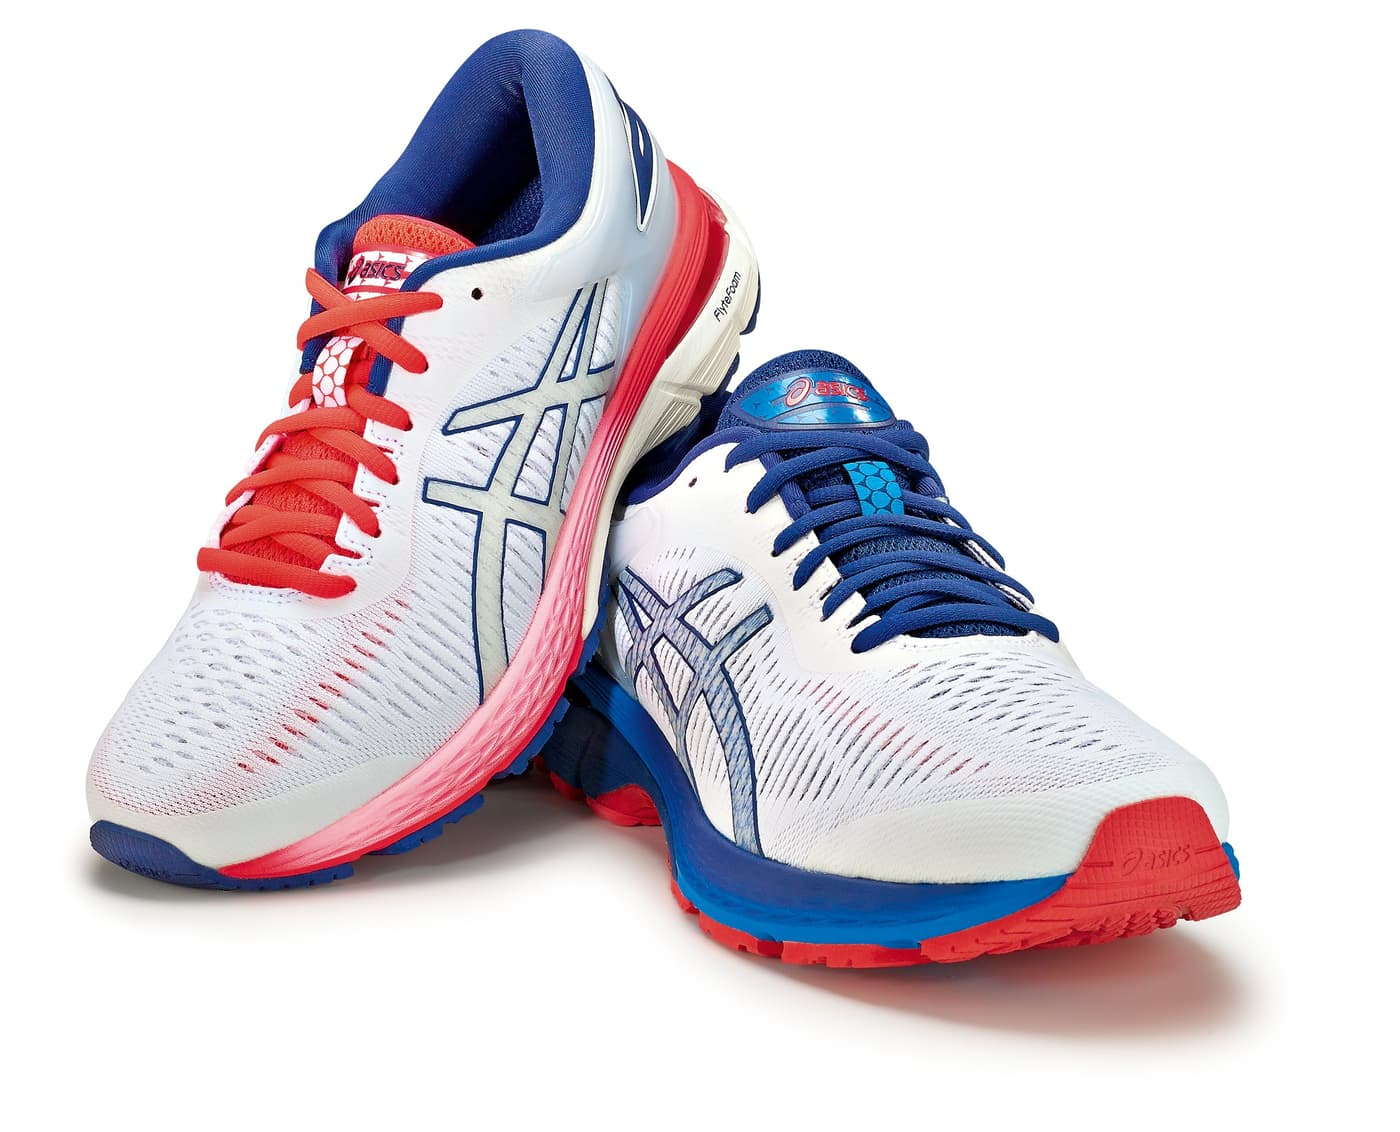 Migros De 25 Homme Pour Gel Asics Kayano Chaussures Course HwZxB6